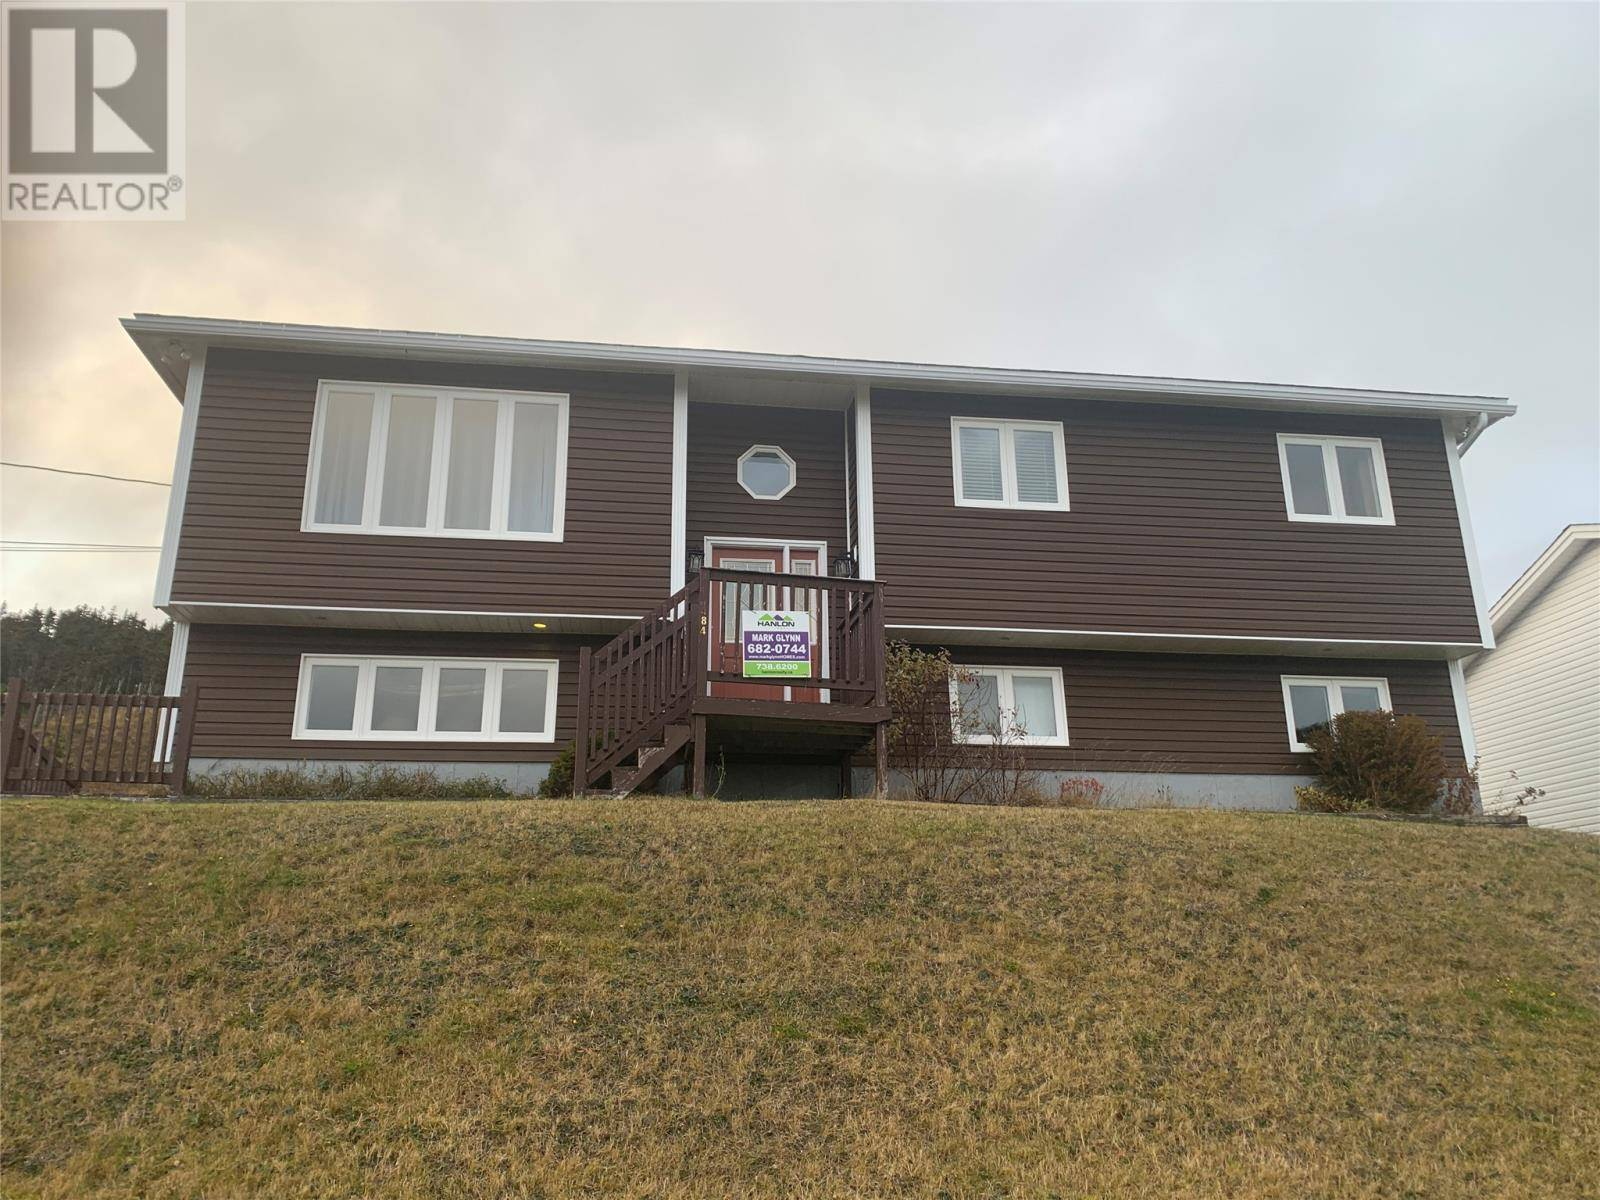 House for sale at 484 Indian Meal Line Torbay Newfoundland - MLS: 1201159